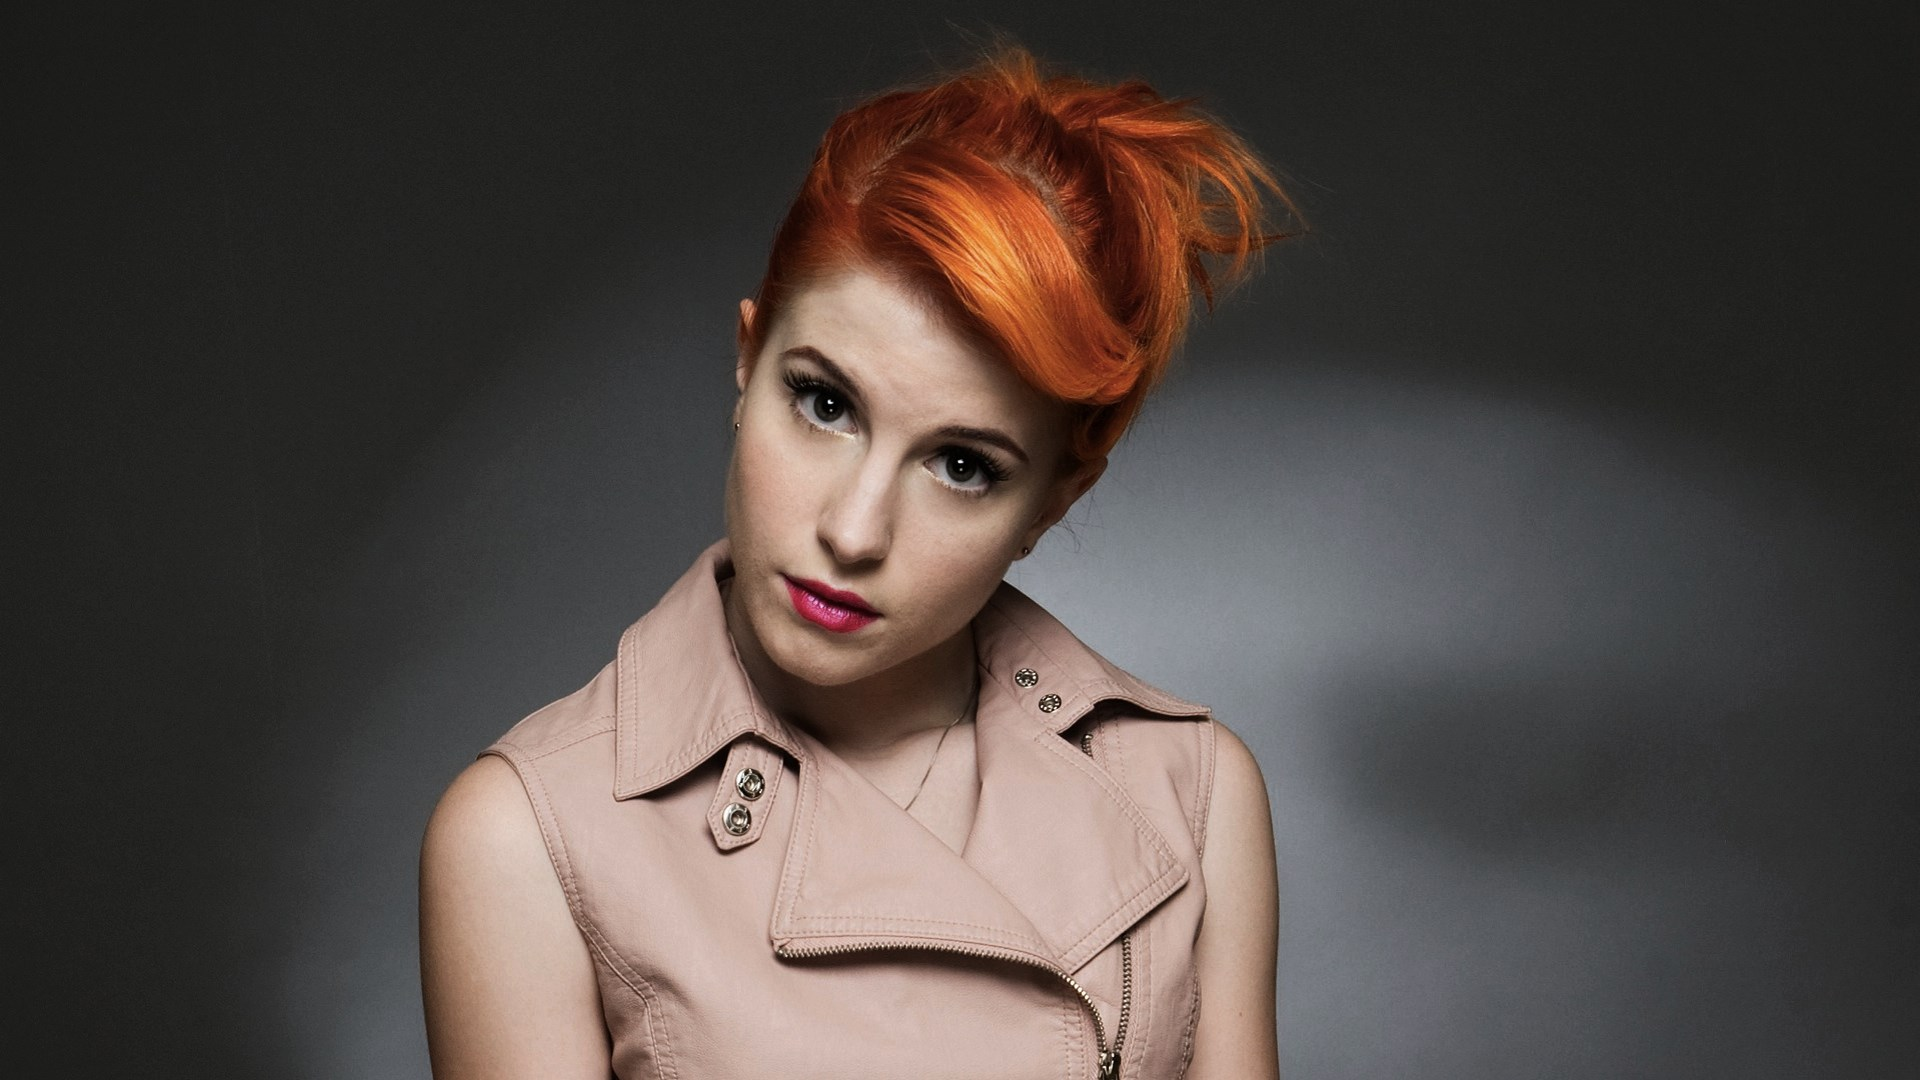 Free Download File Name Hayley Williams Hd Wallpaper